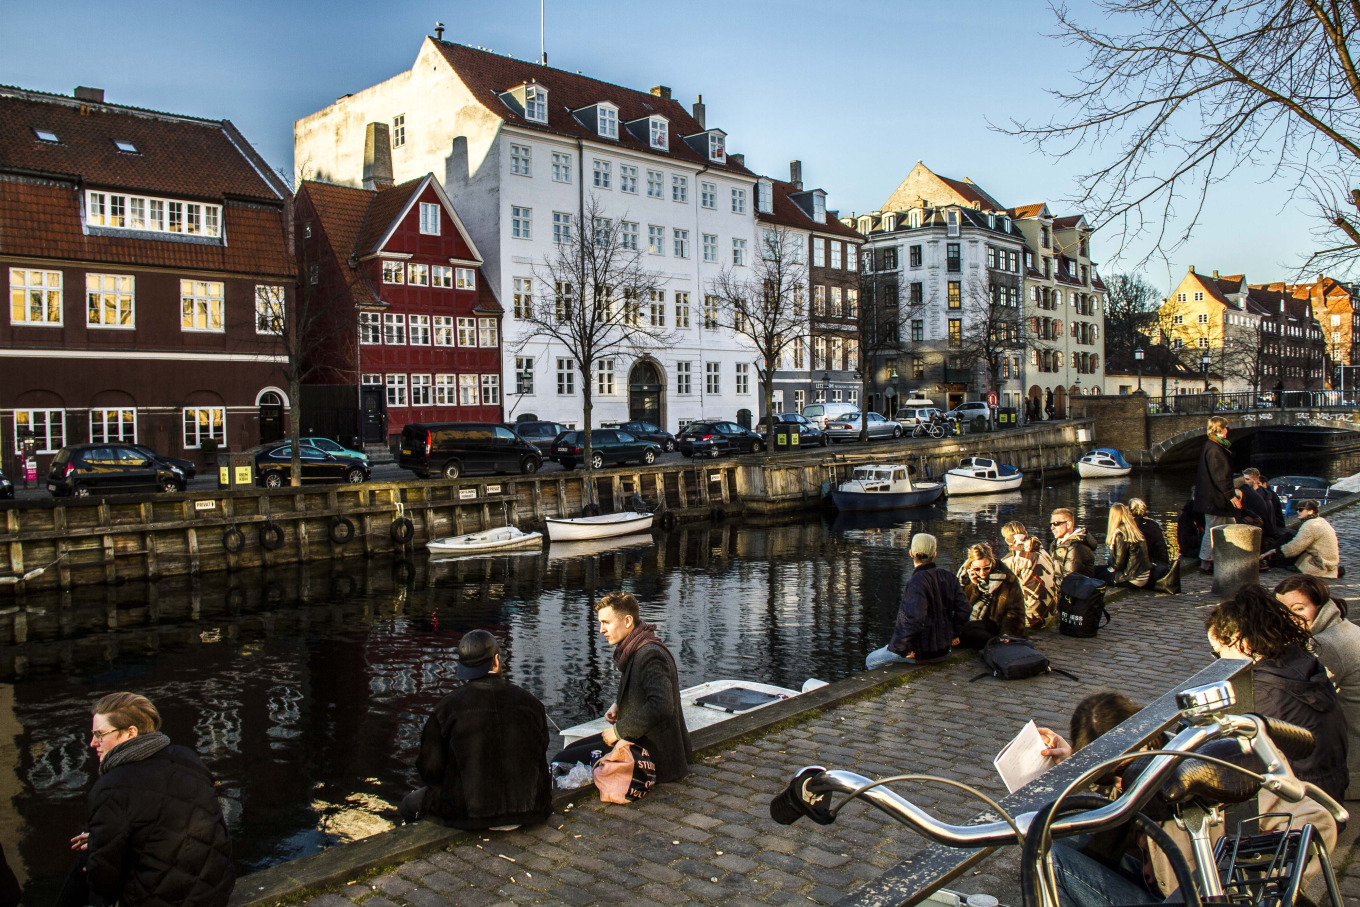 bloomberg.com - Frances Schwartzkopff - World's Cheapest Mortgage May Be Around the Corner in Denmark